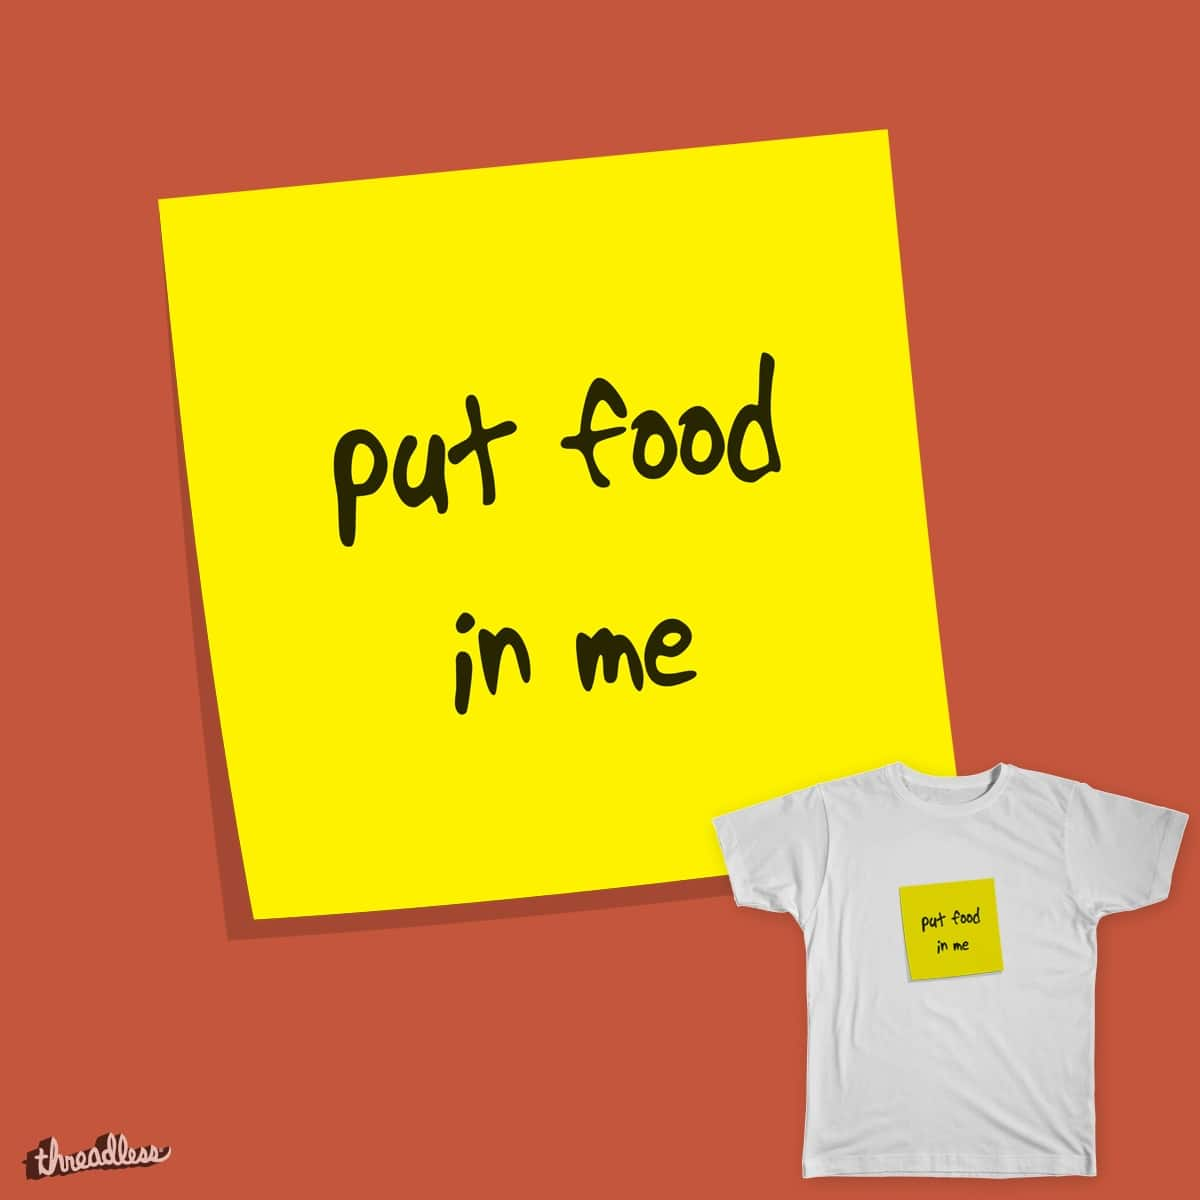 Put Food In Me by stellarchariot on Threadless